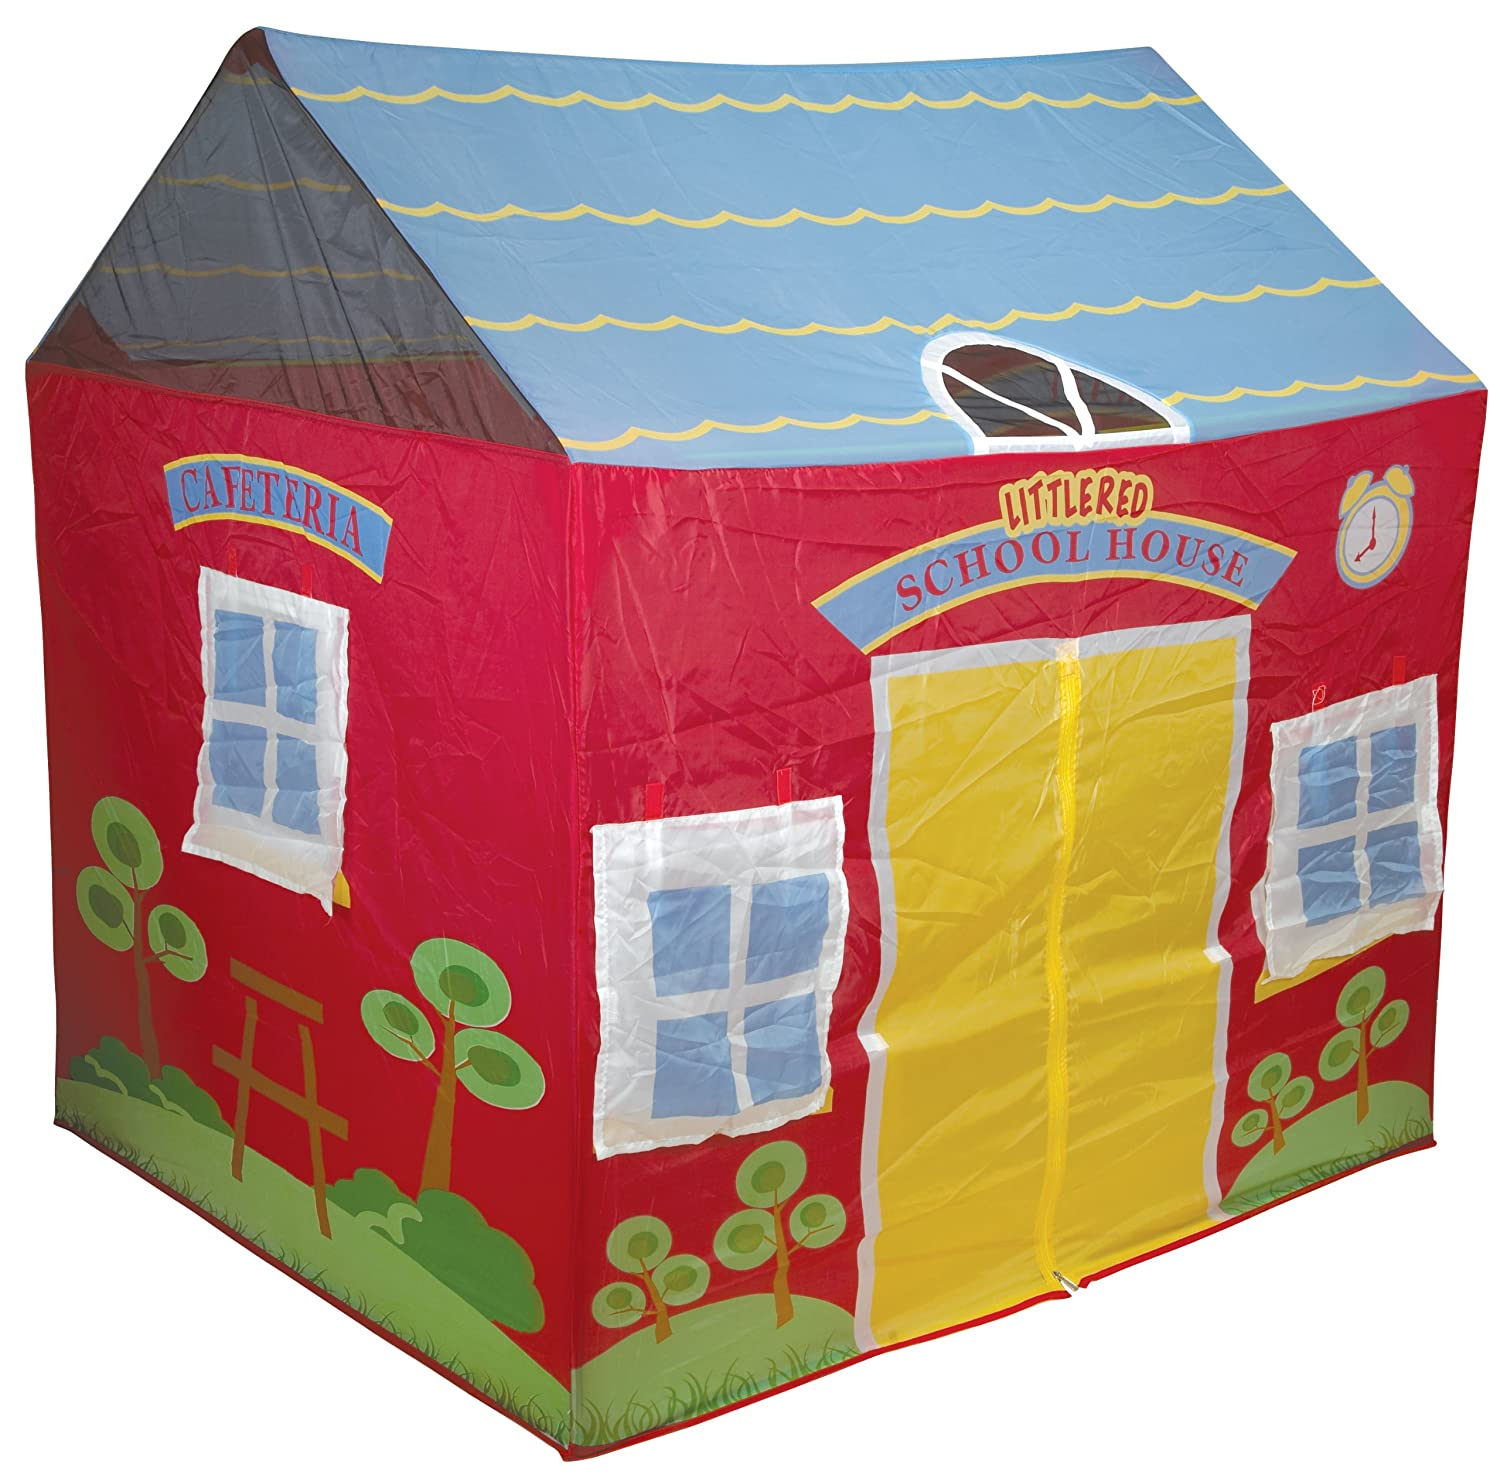 Amazon.com: Pacific Play Tents Kids Little Red School House Tent ...